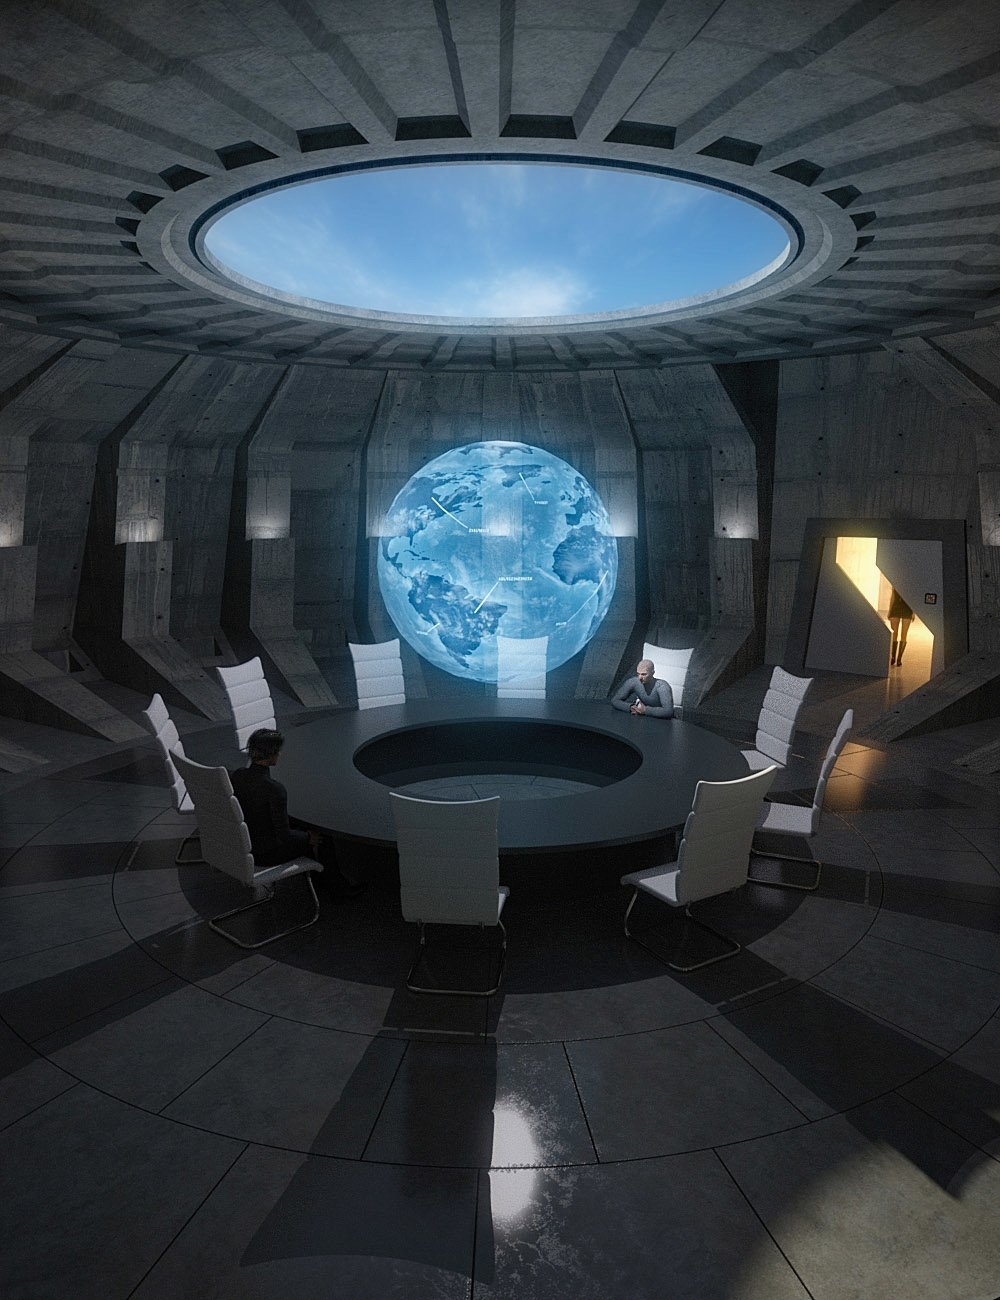 Supervillain Conference Room by: bitwelder, 3D Models by Daz 3D